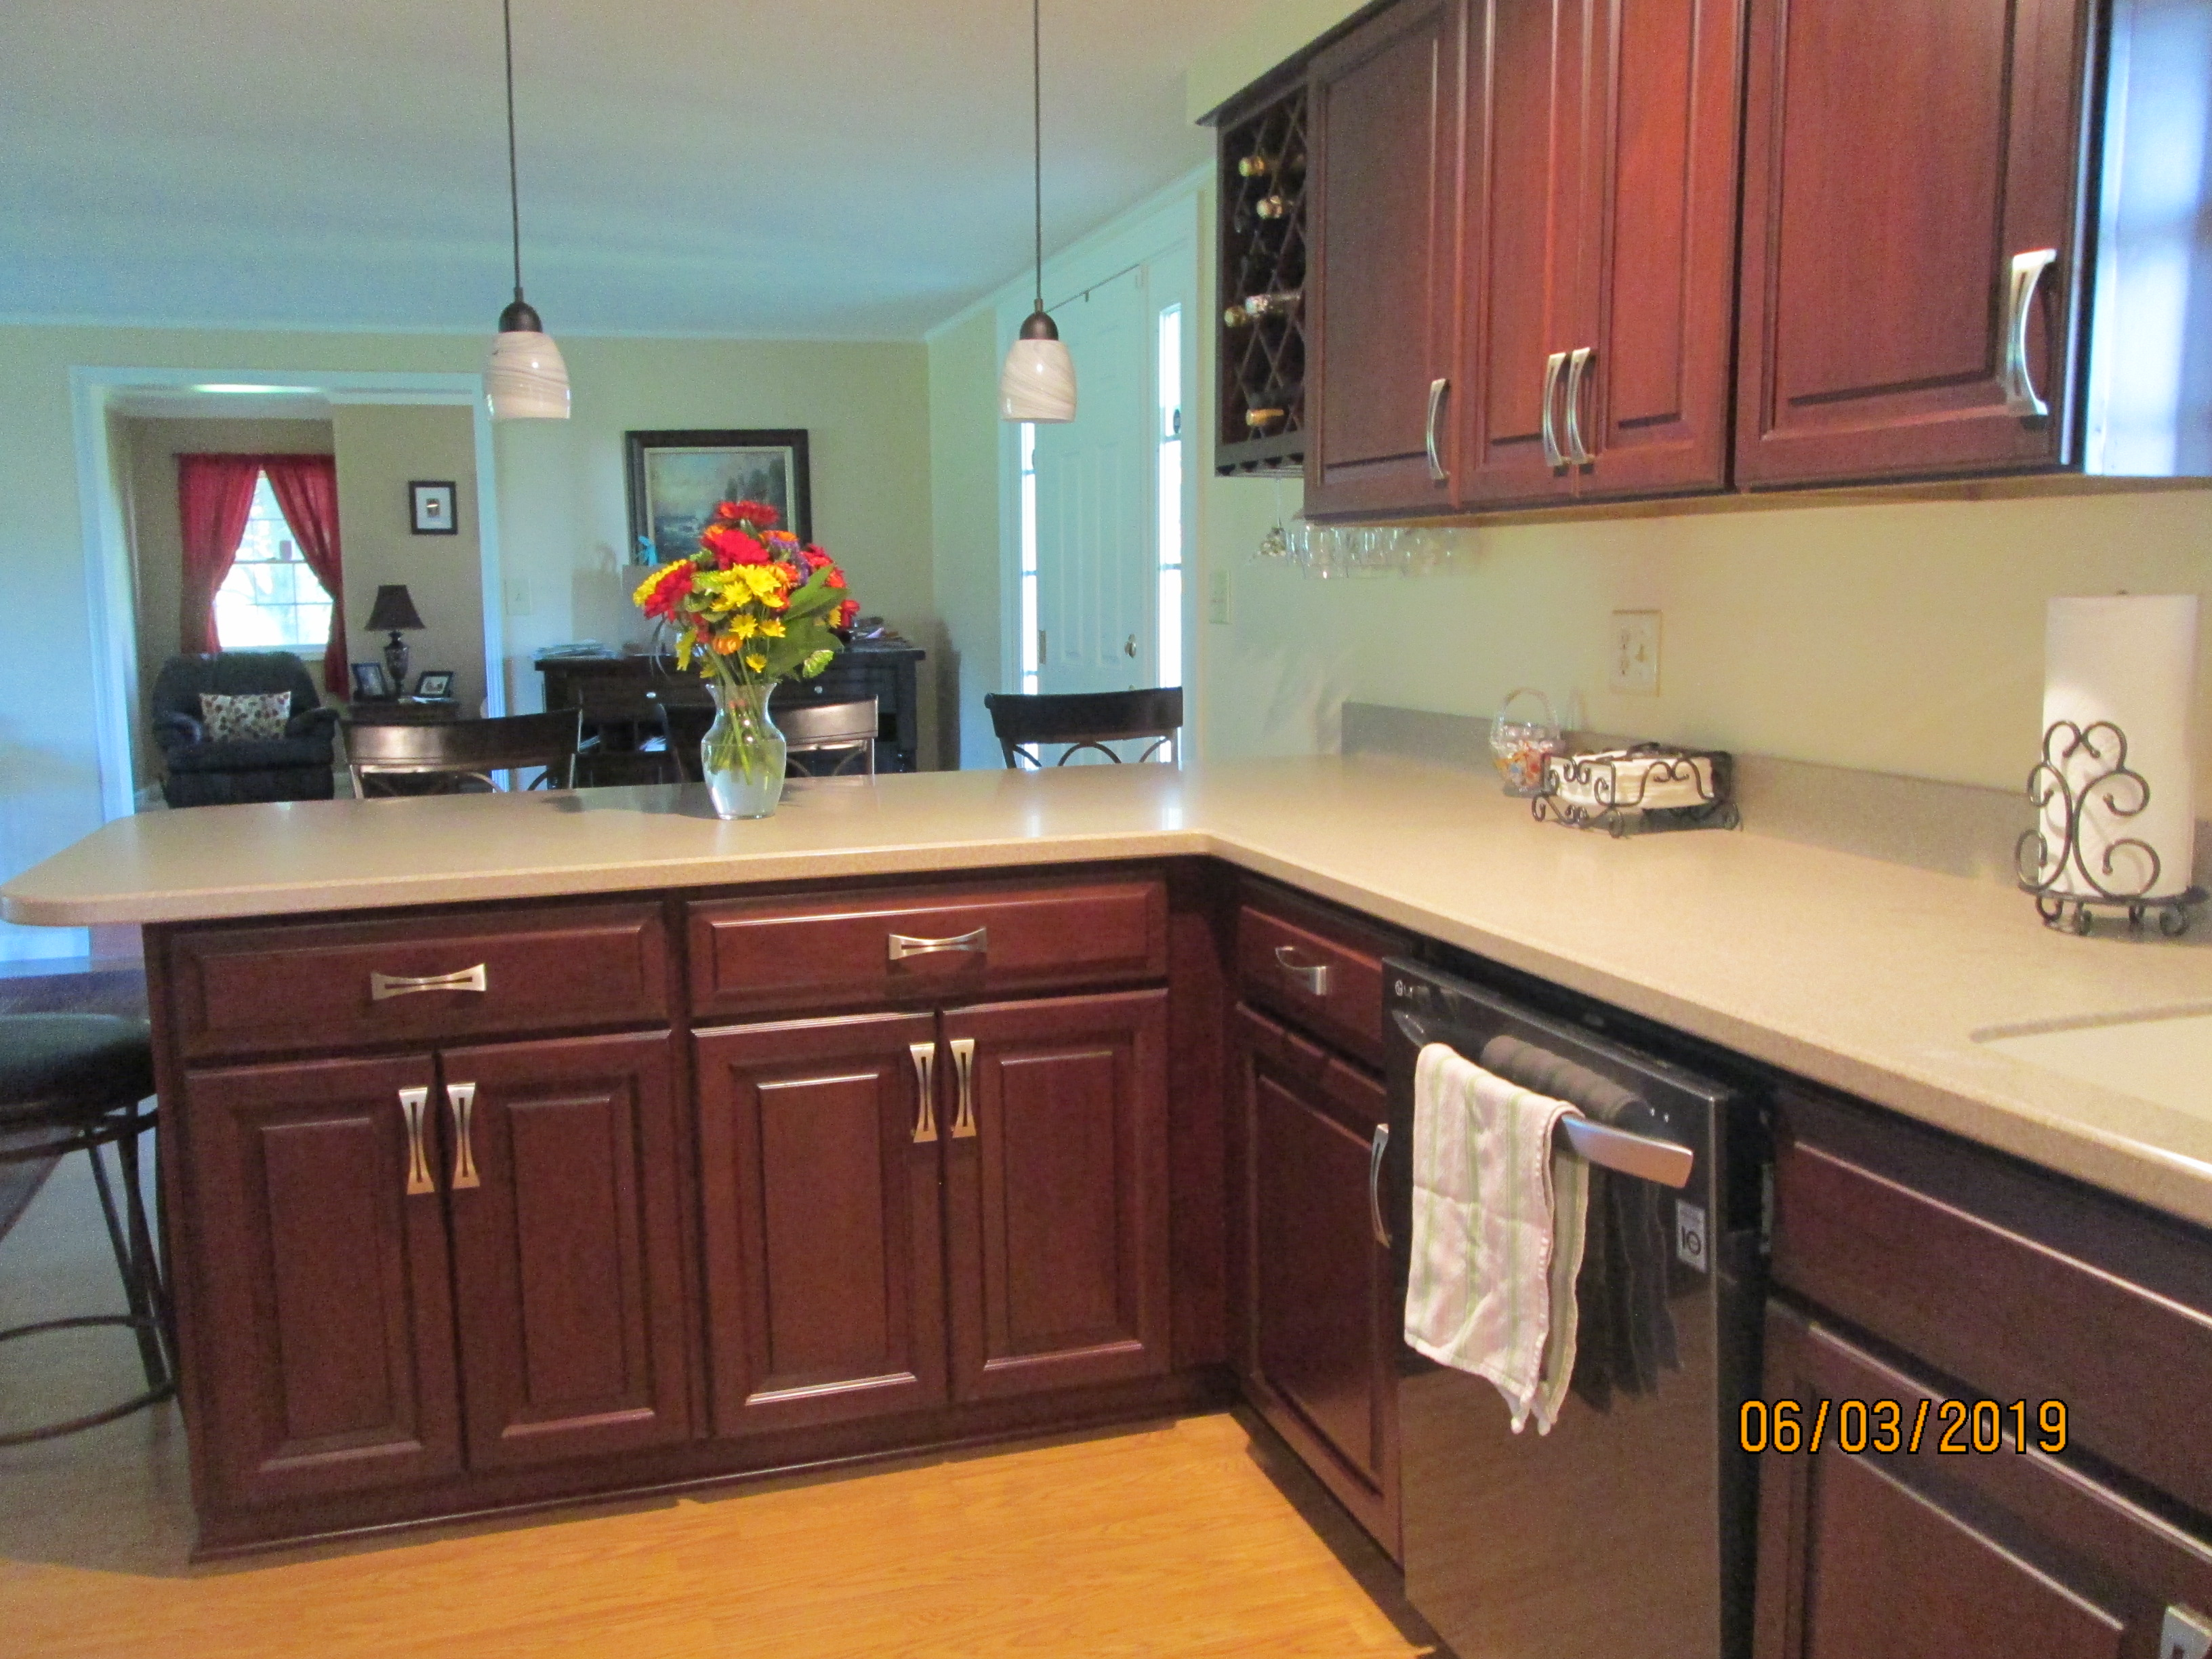 Kitchen Cabinets Syracuse - Concepts in Wood